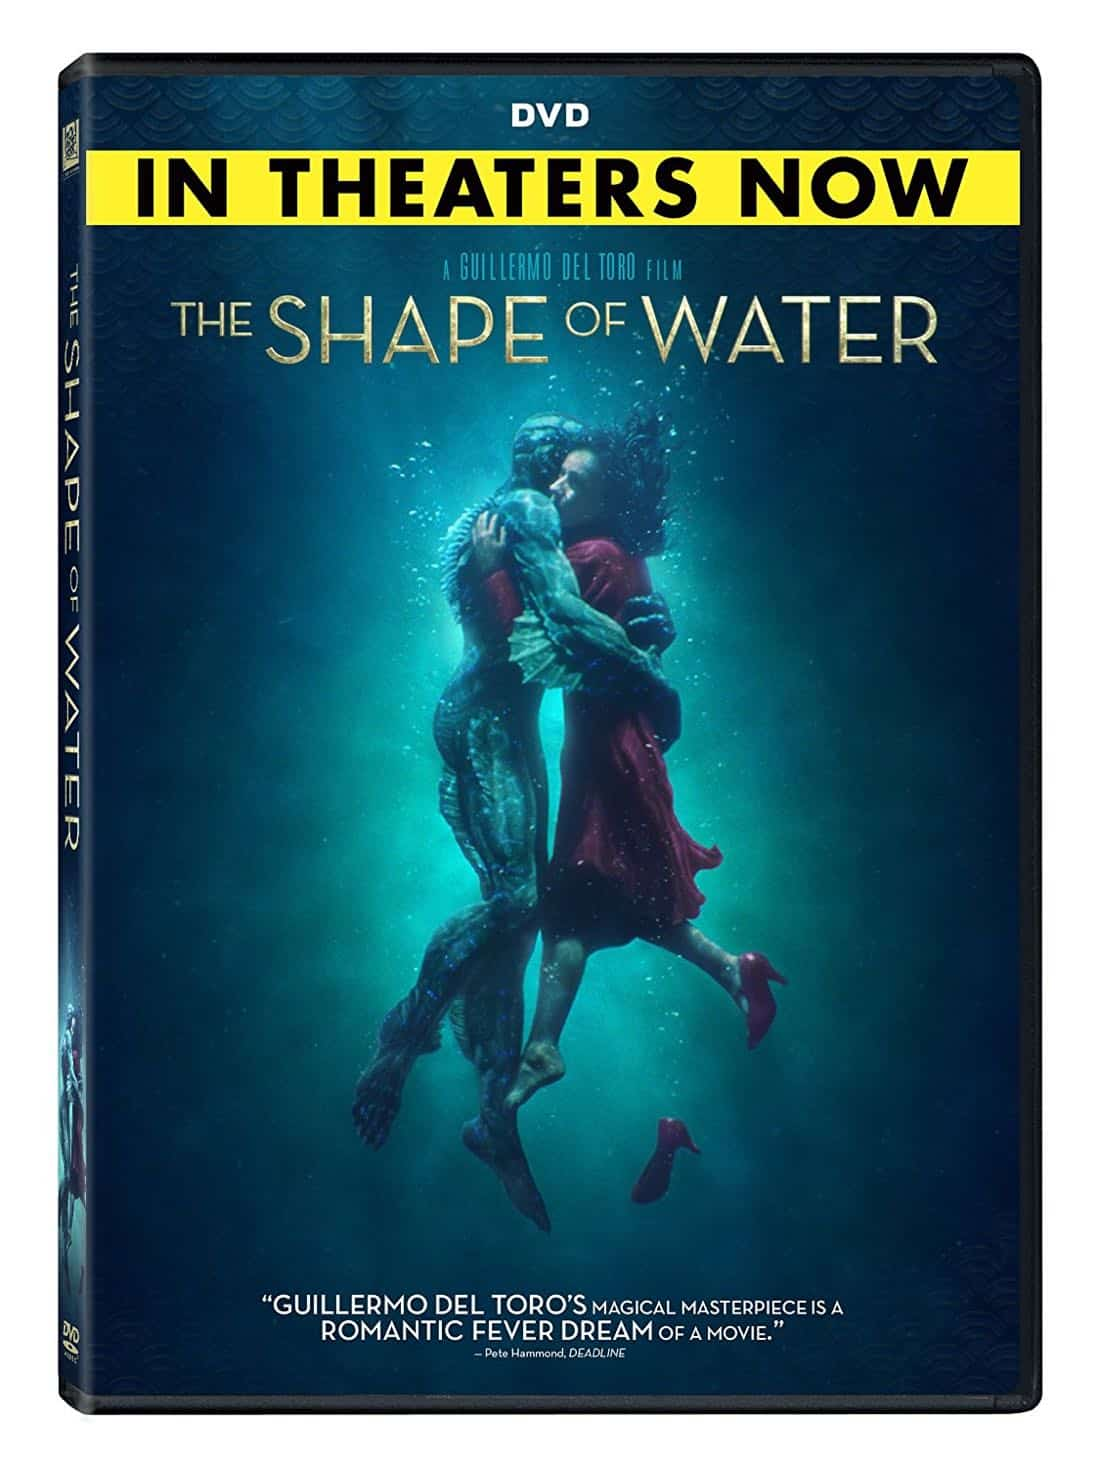 The-Shape-Of-Water-DVD